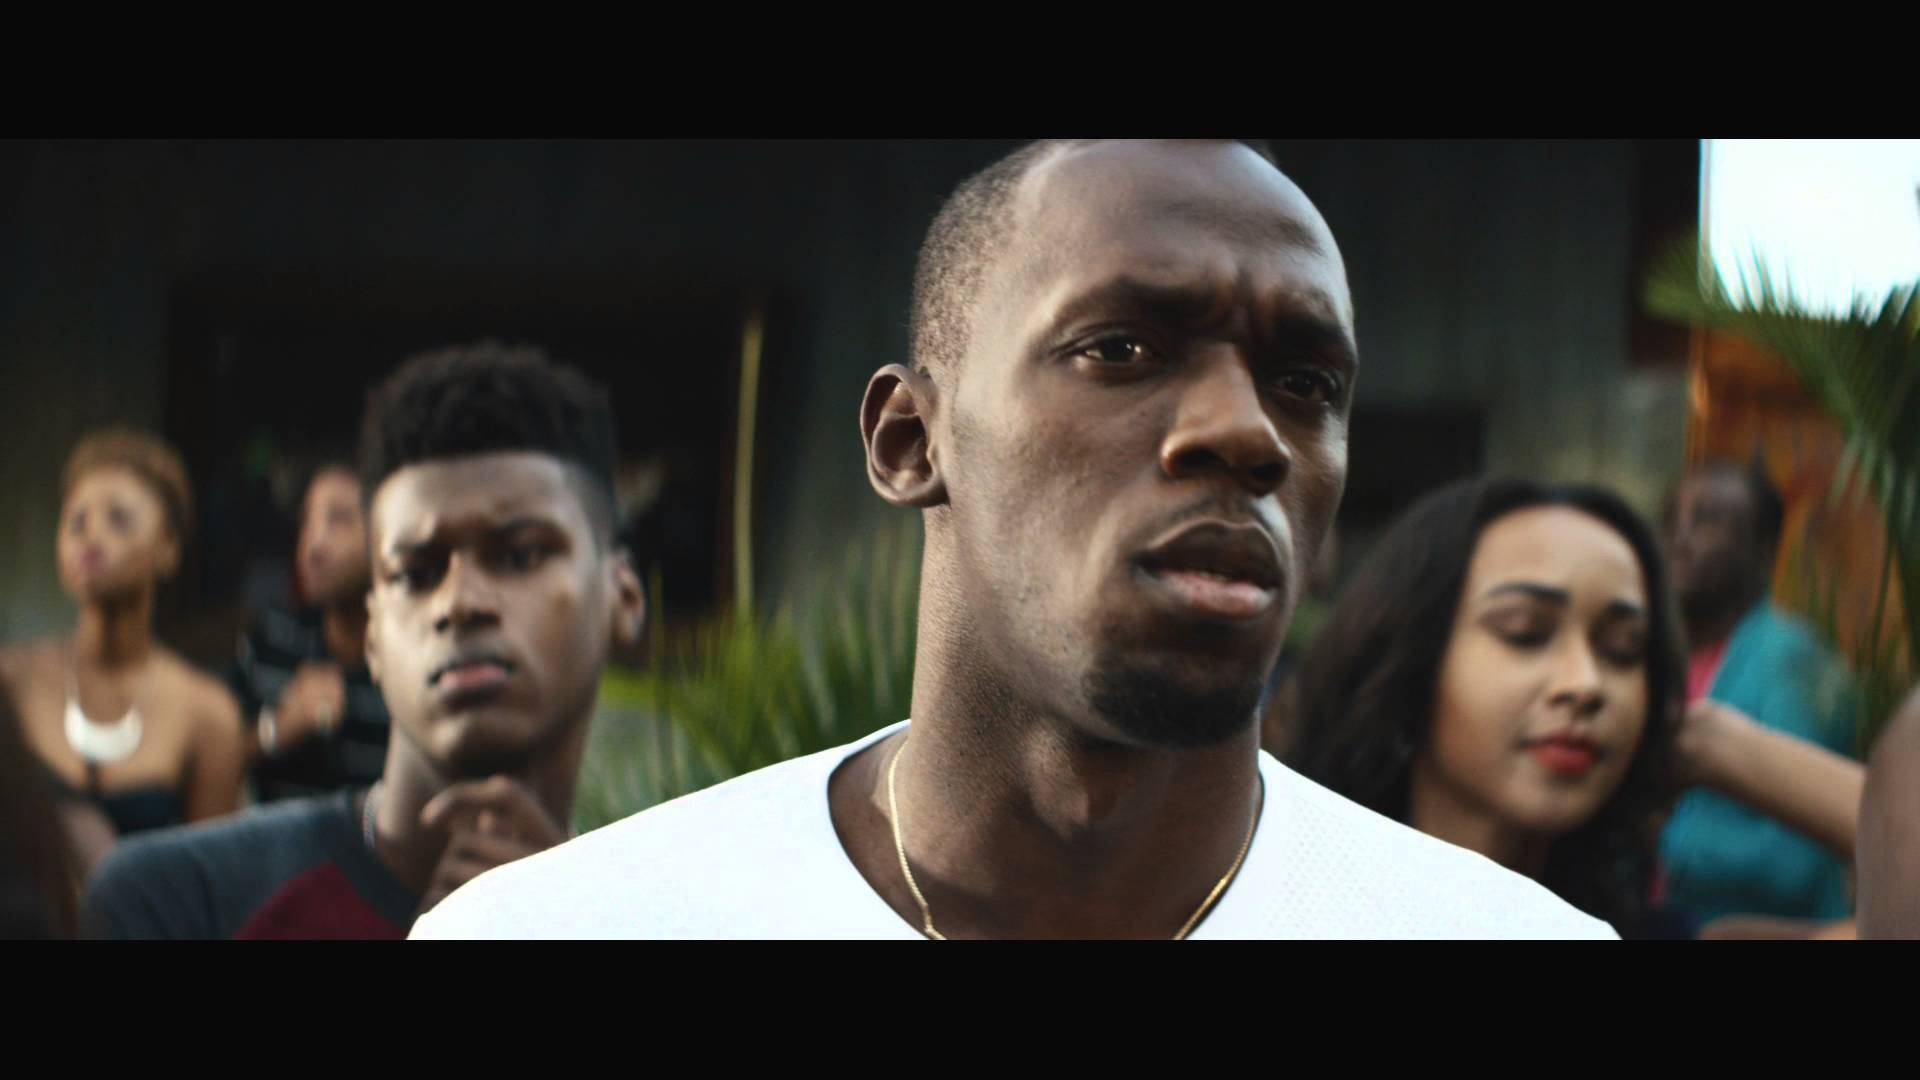 WATCH: TURN IT ON (Extended Version) Featuring Usain Bolt, Asafa Powell, and Andre de Grasse